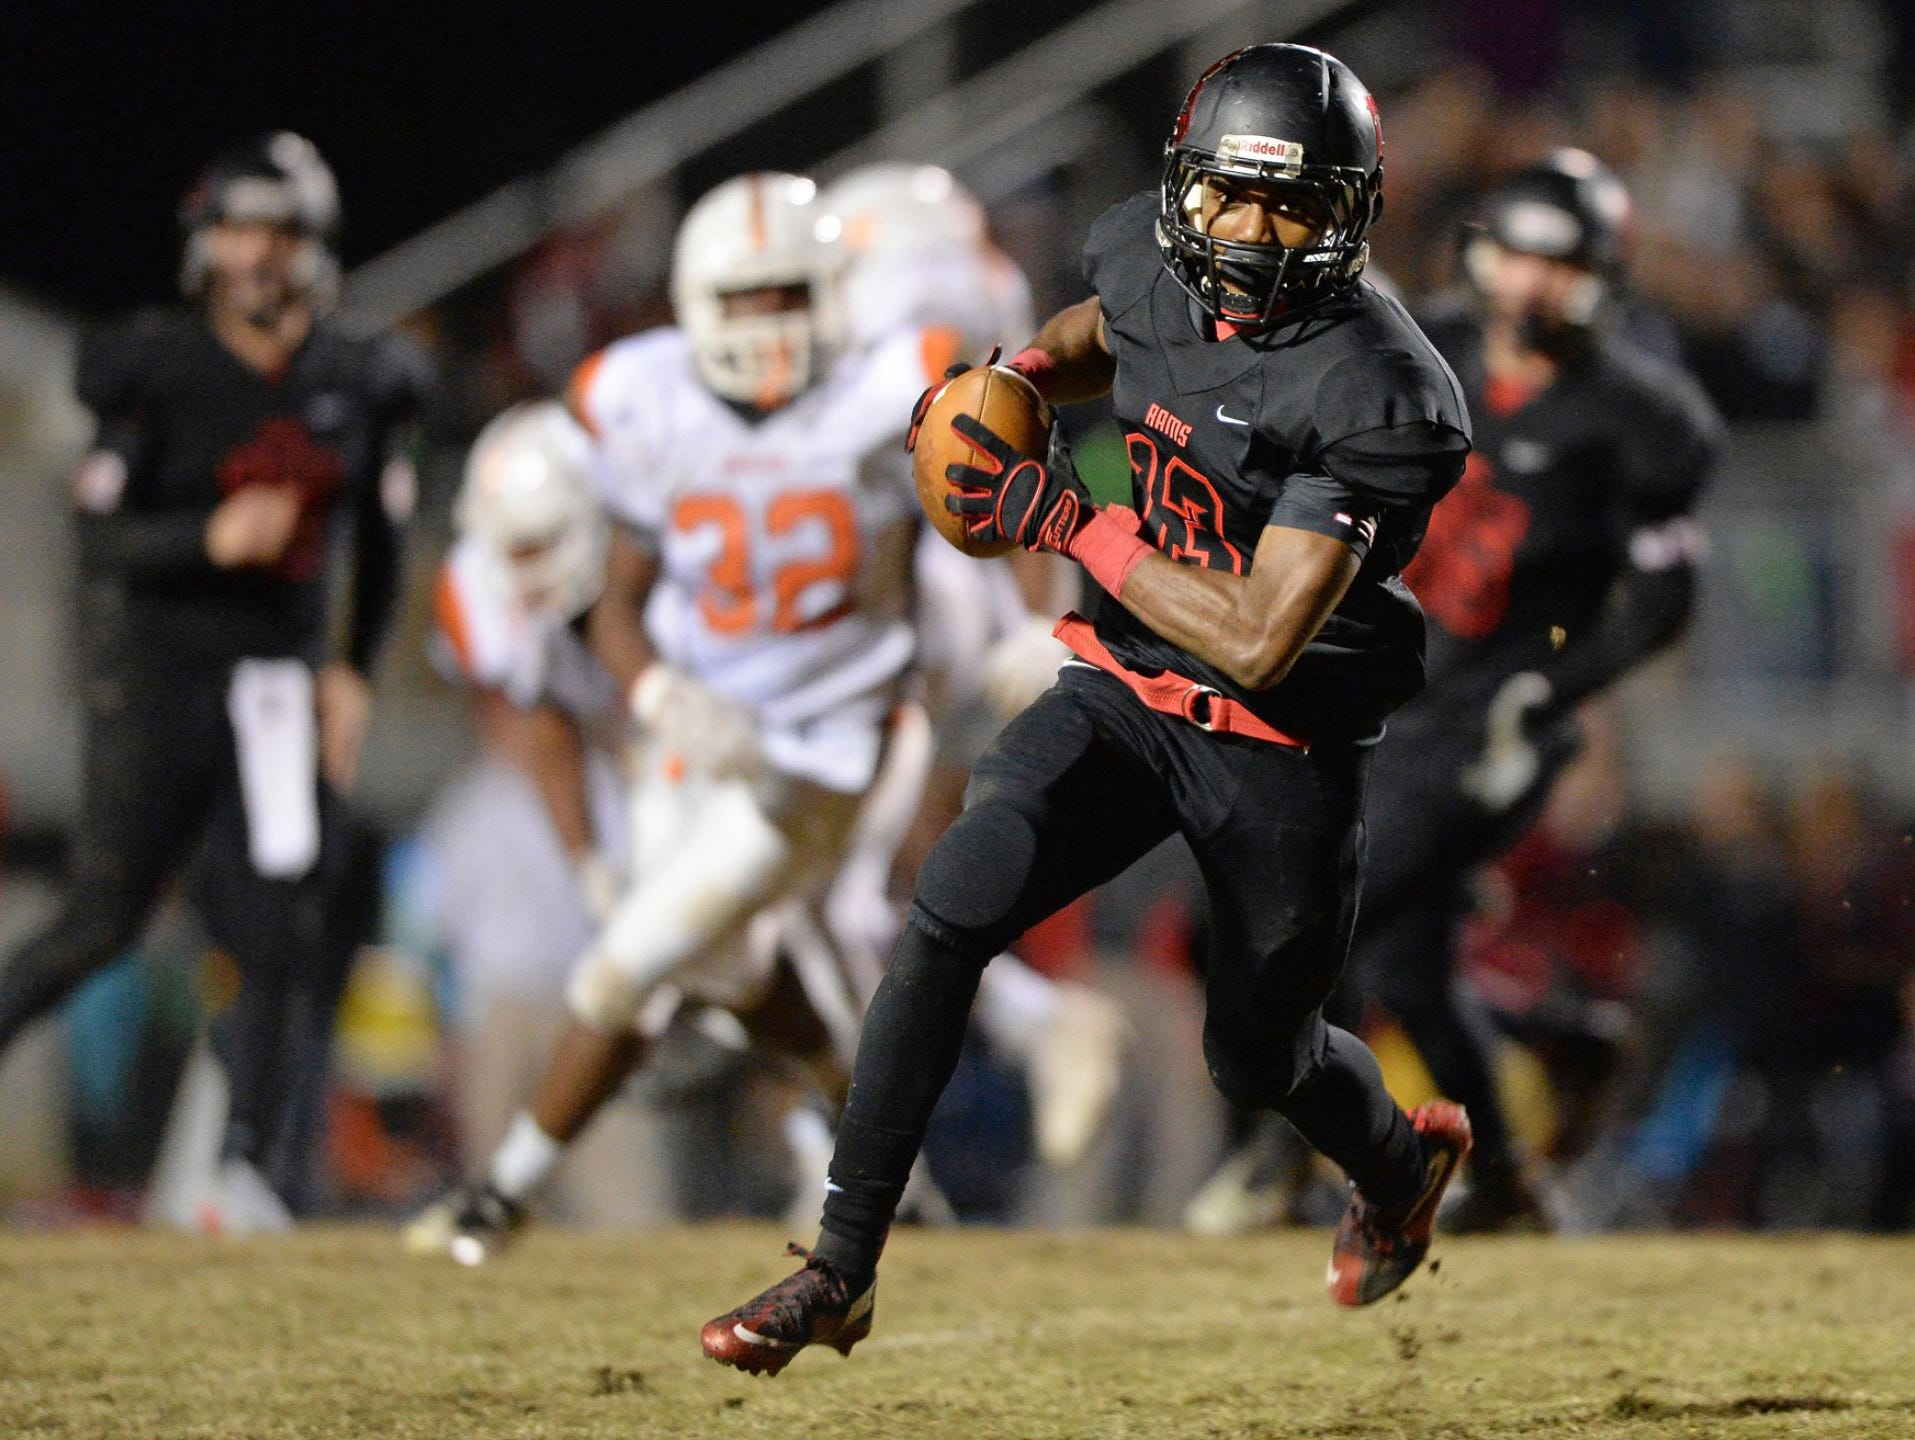 Junior wide receiver Brandon Peppers (13) and the Hillcrest Rams will travel to Goose Creek for a Class AAAA Division I second-round playoff game Friday night.